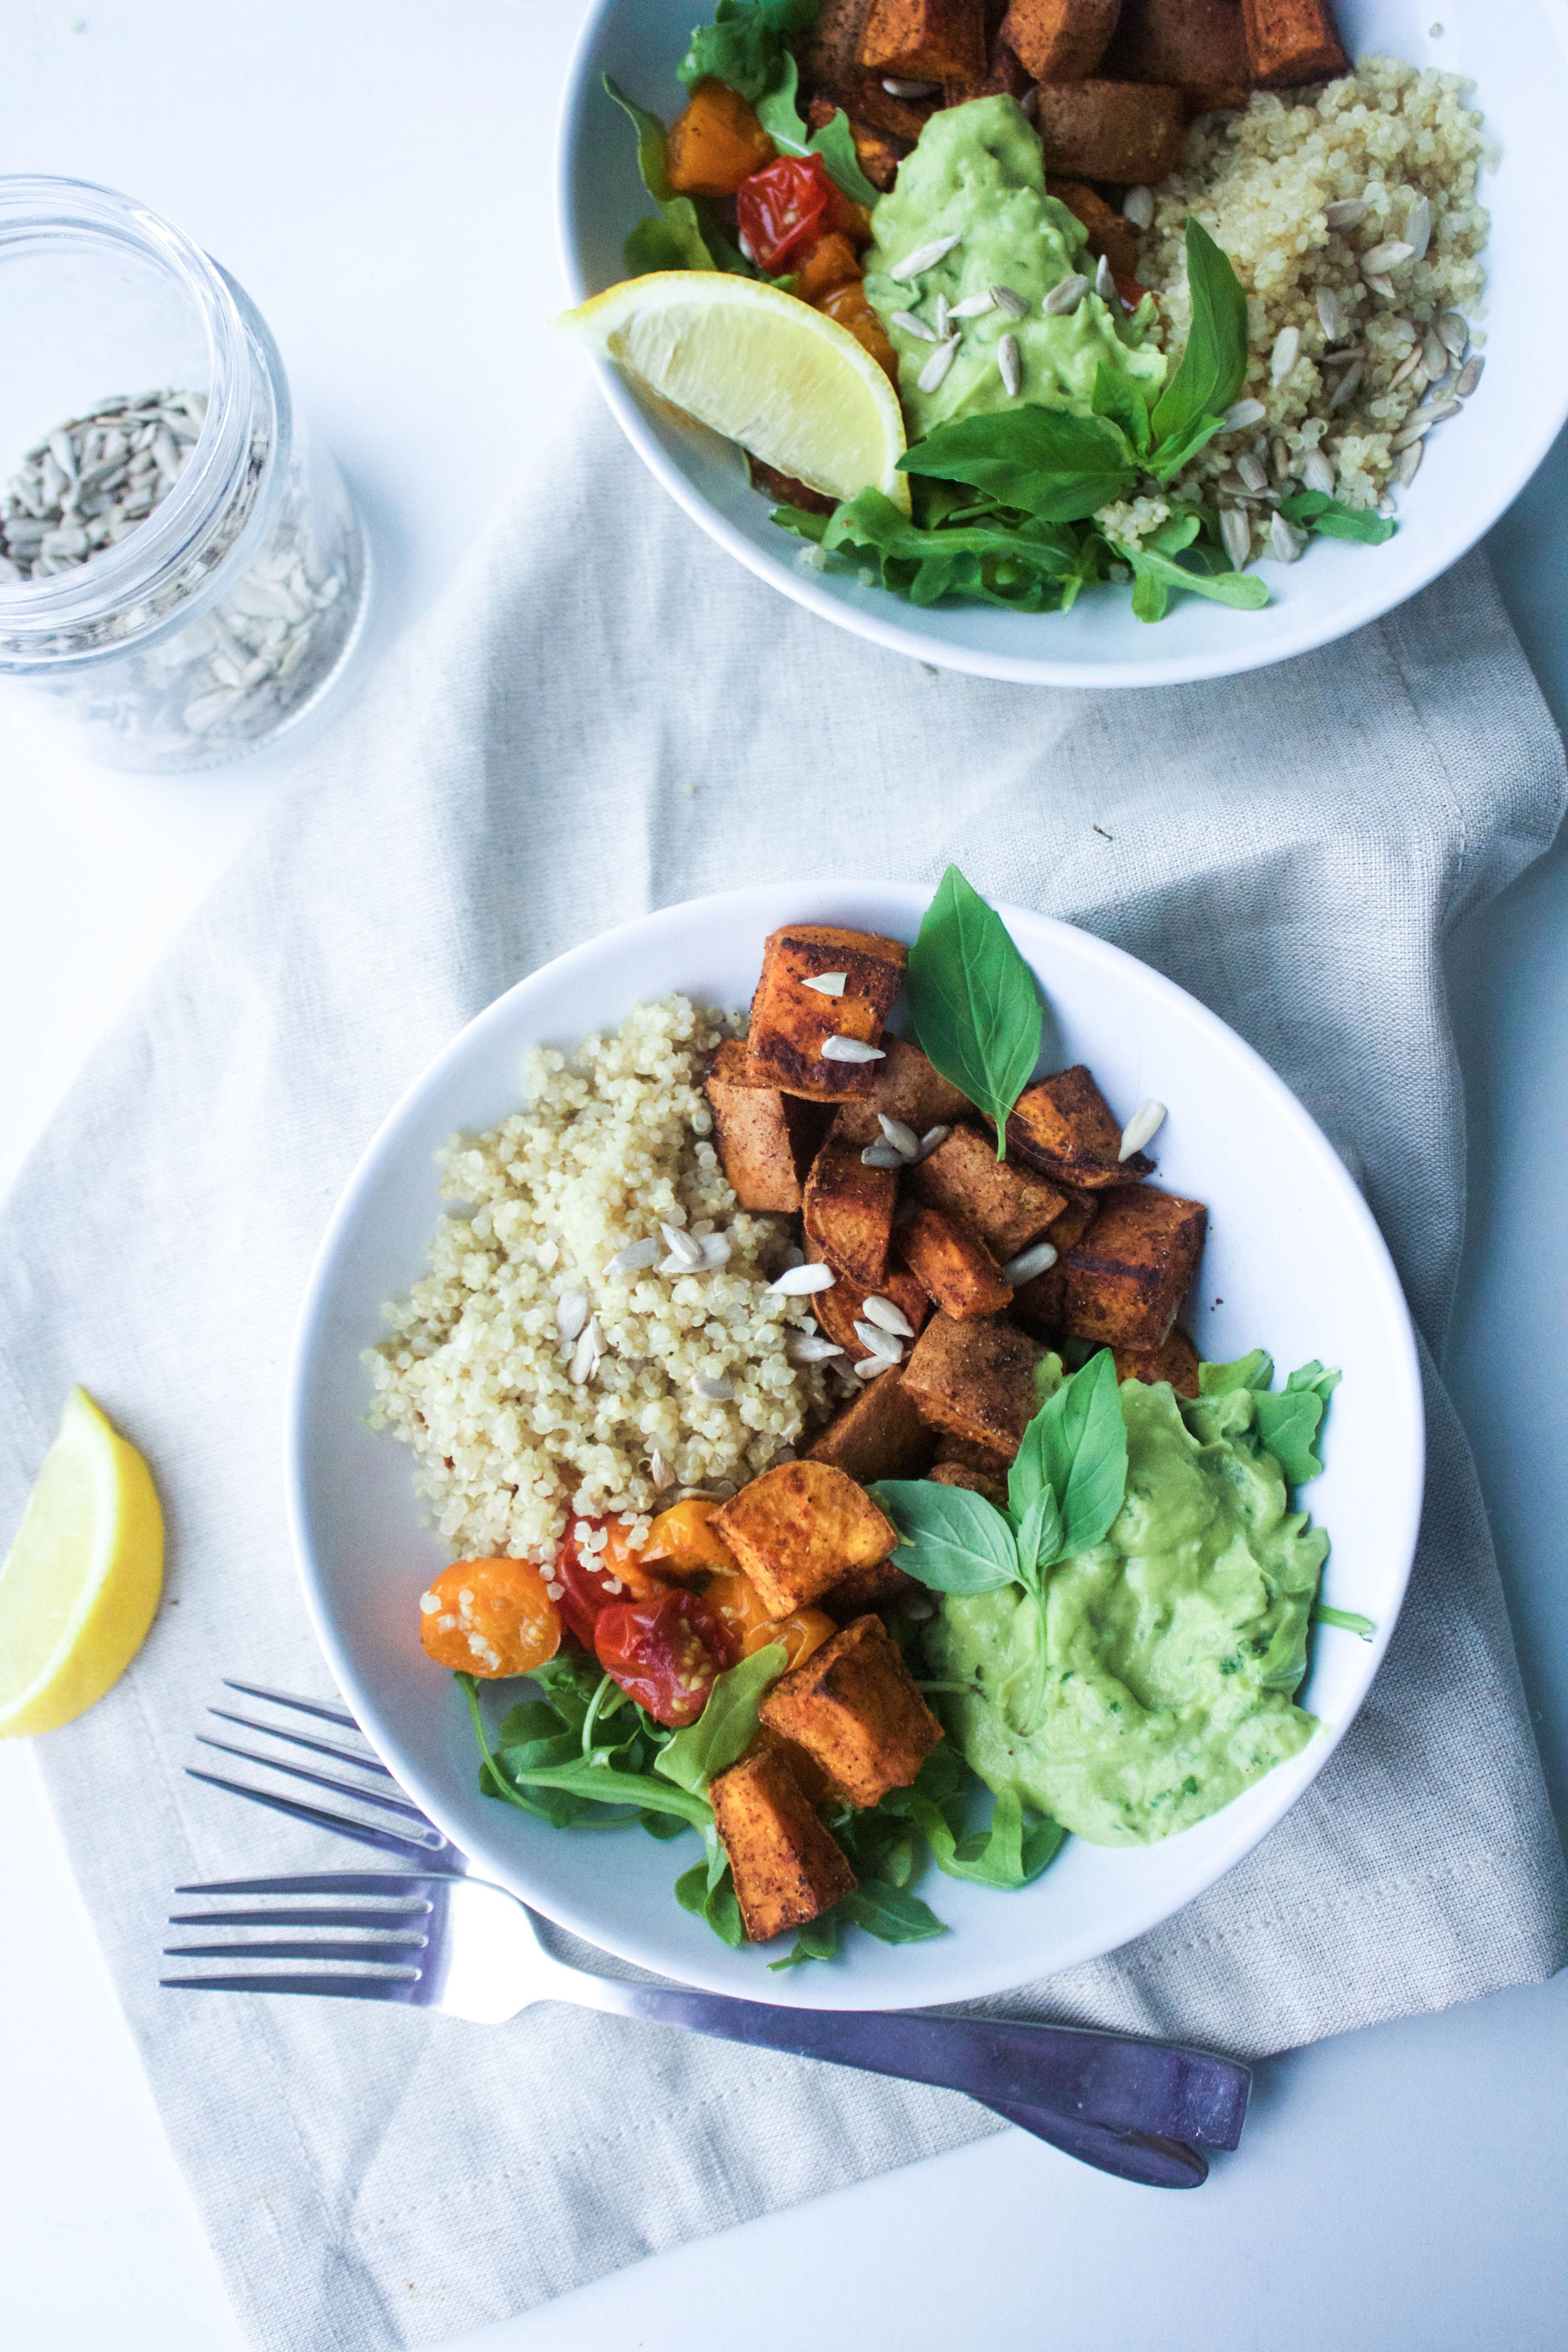 Southwestern Sweet Potato Bowl With Avocado Pesto